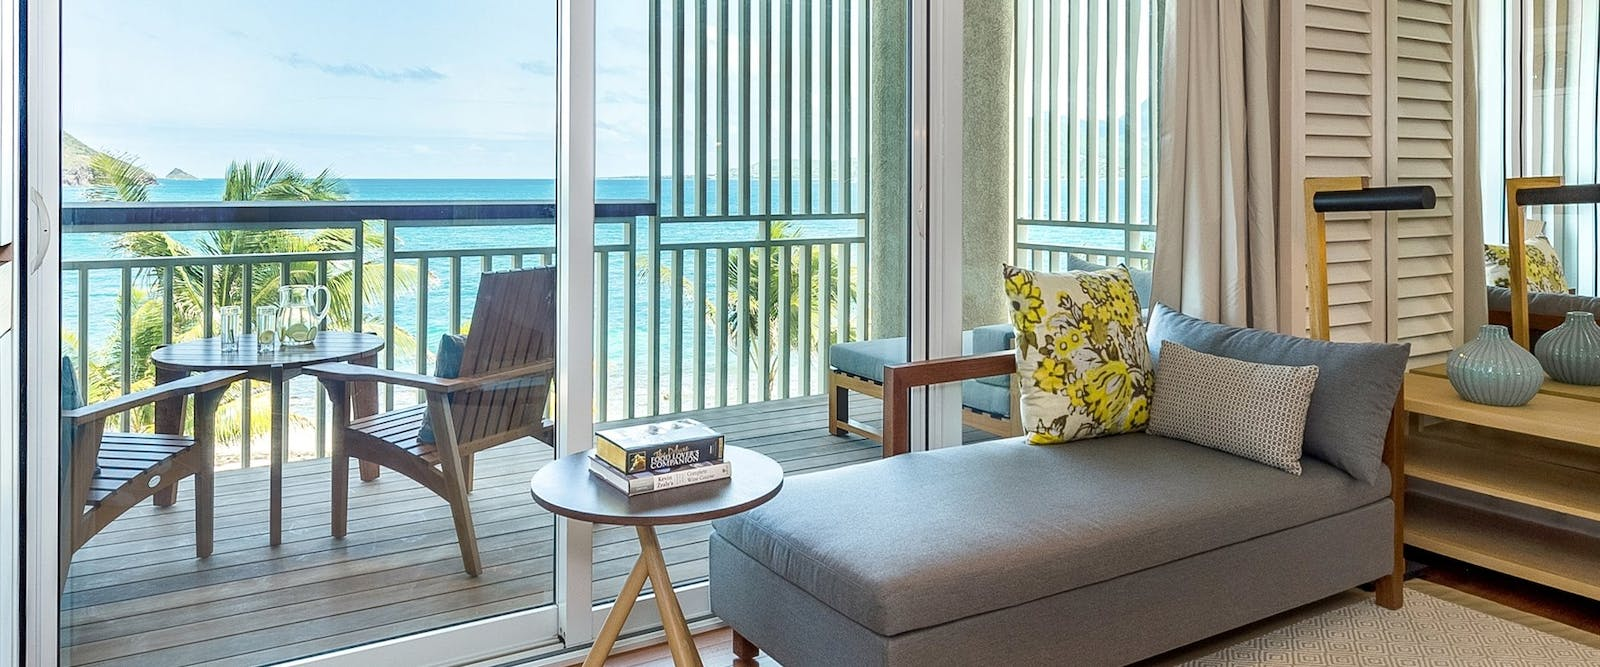 Guest Room Living Space at Park Hyatt St Kitts